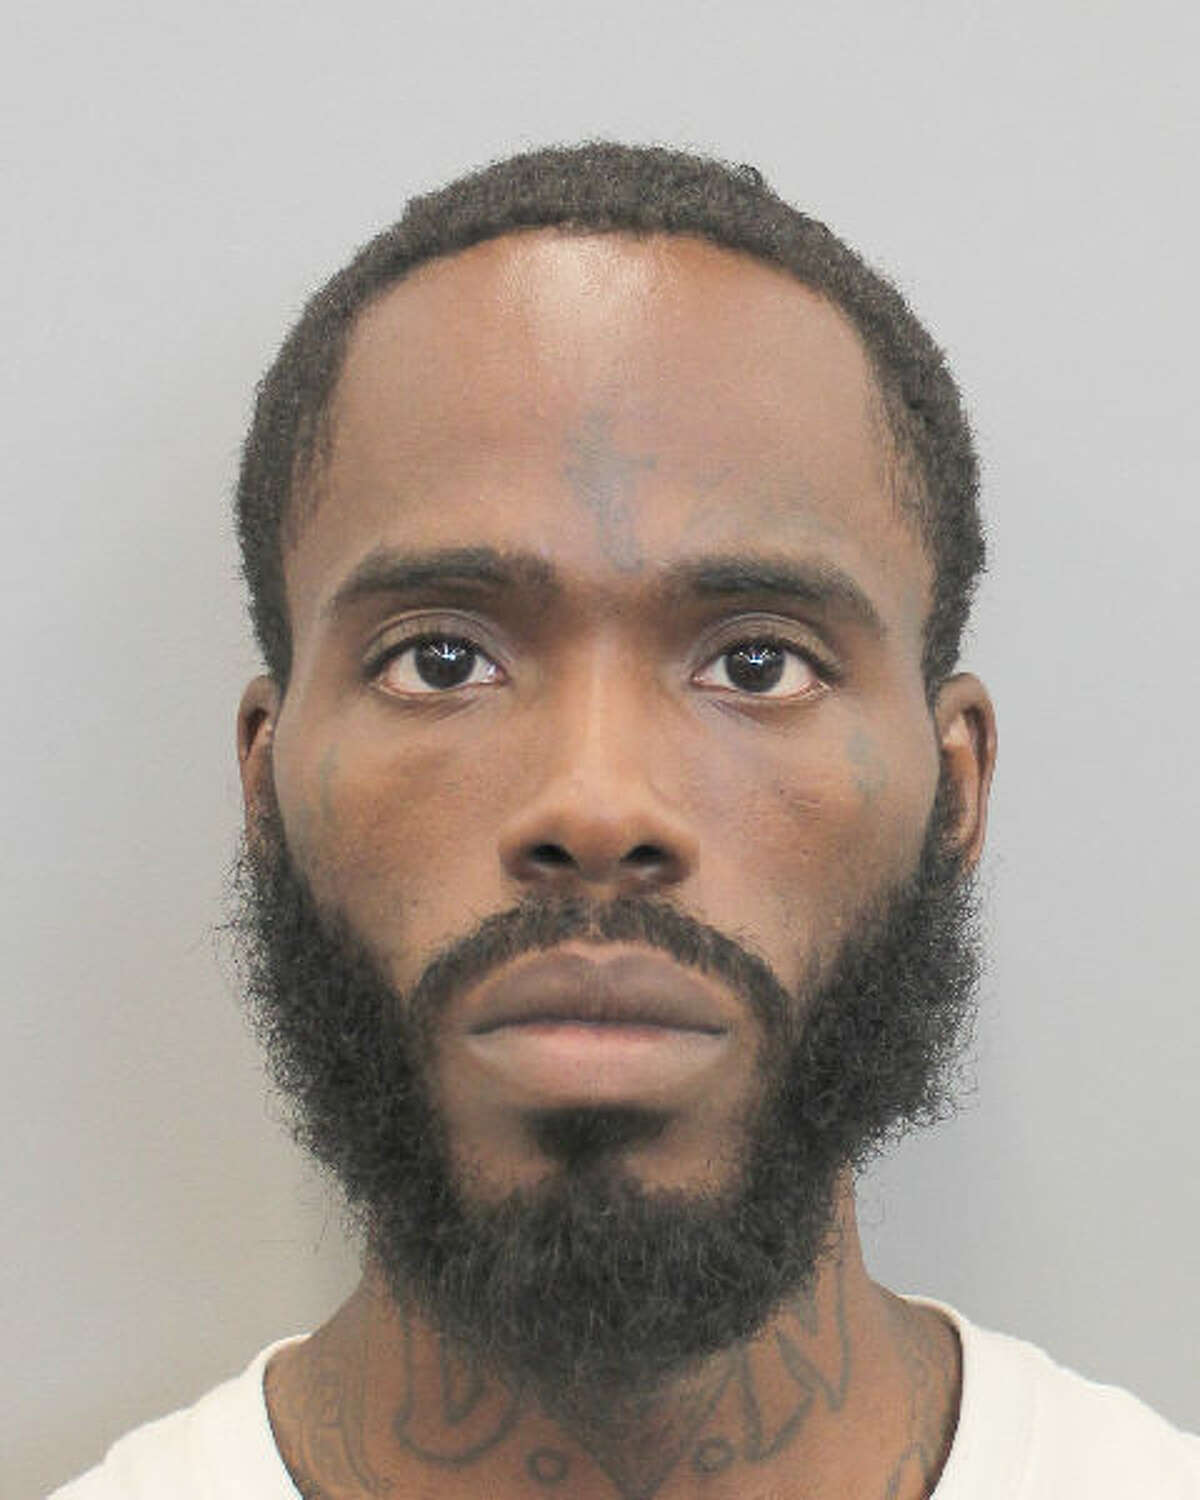 Xavier Davis, 28, is facing three capital murder charges and one charge of aggravated assault with a deadly weapon in connection with a triple homicide last week in Houston.